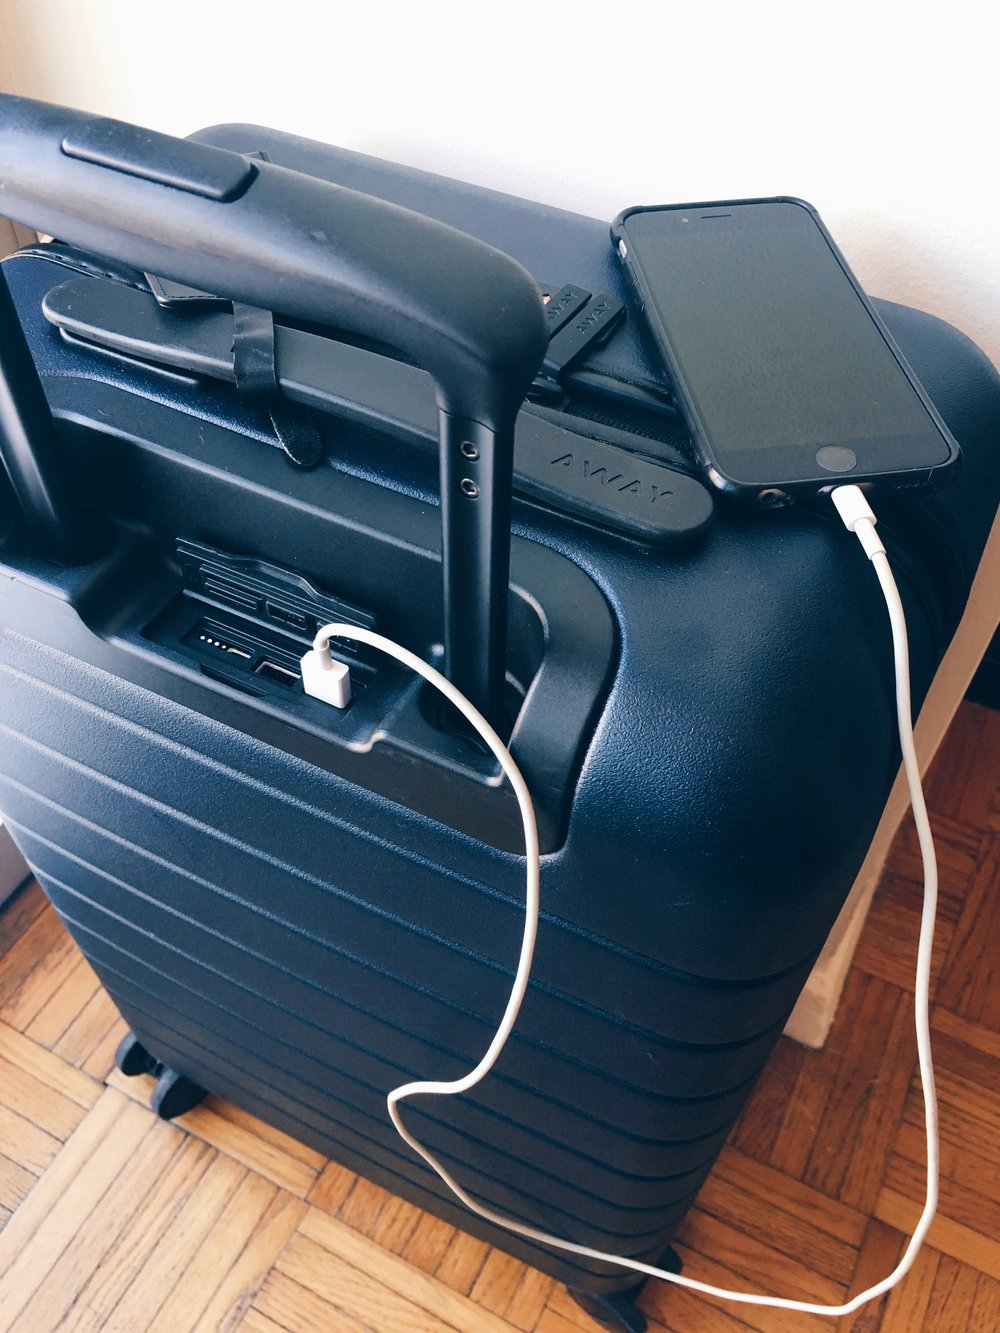 USB Charger on Carry-On Luggage